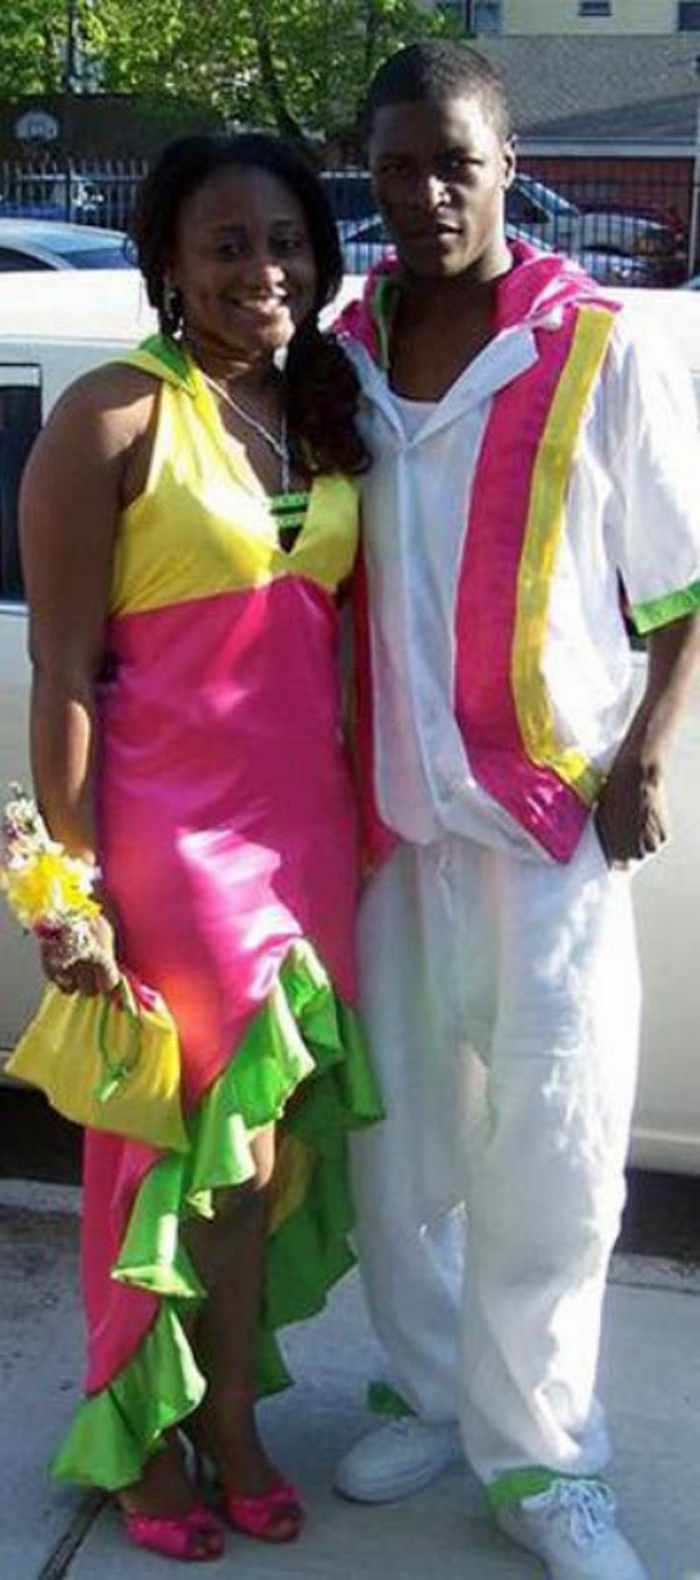 45 Worst Prom Dress Fails Ever In The Prom History -37